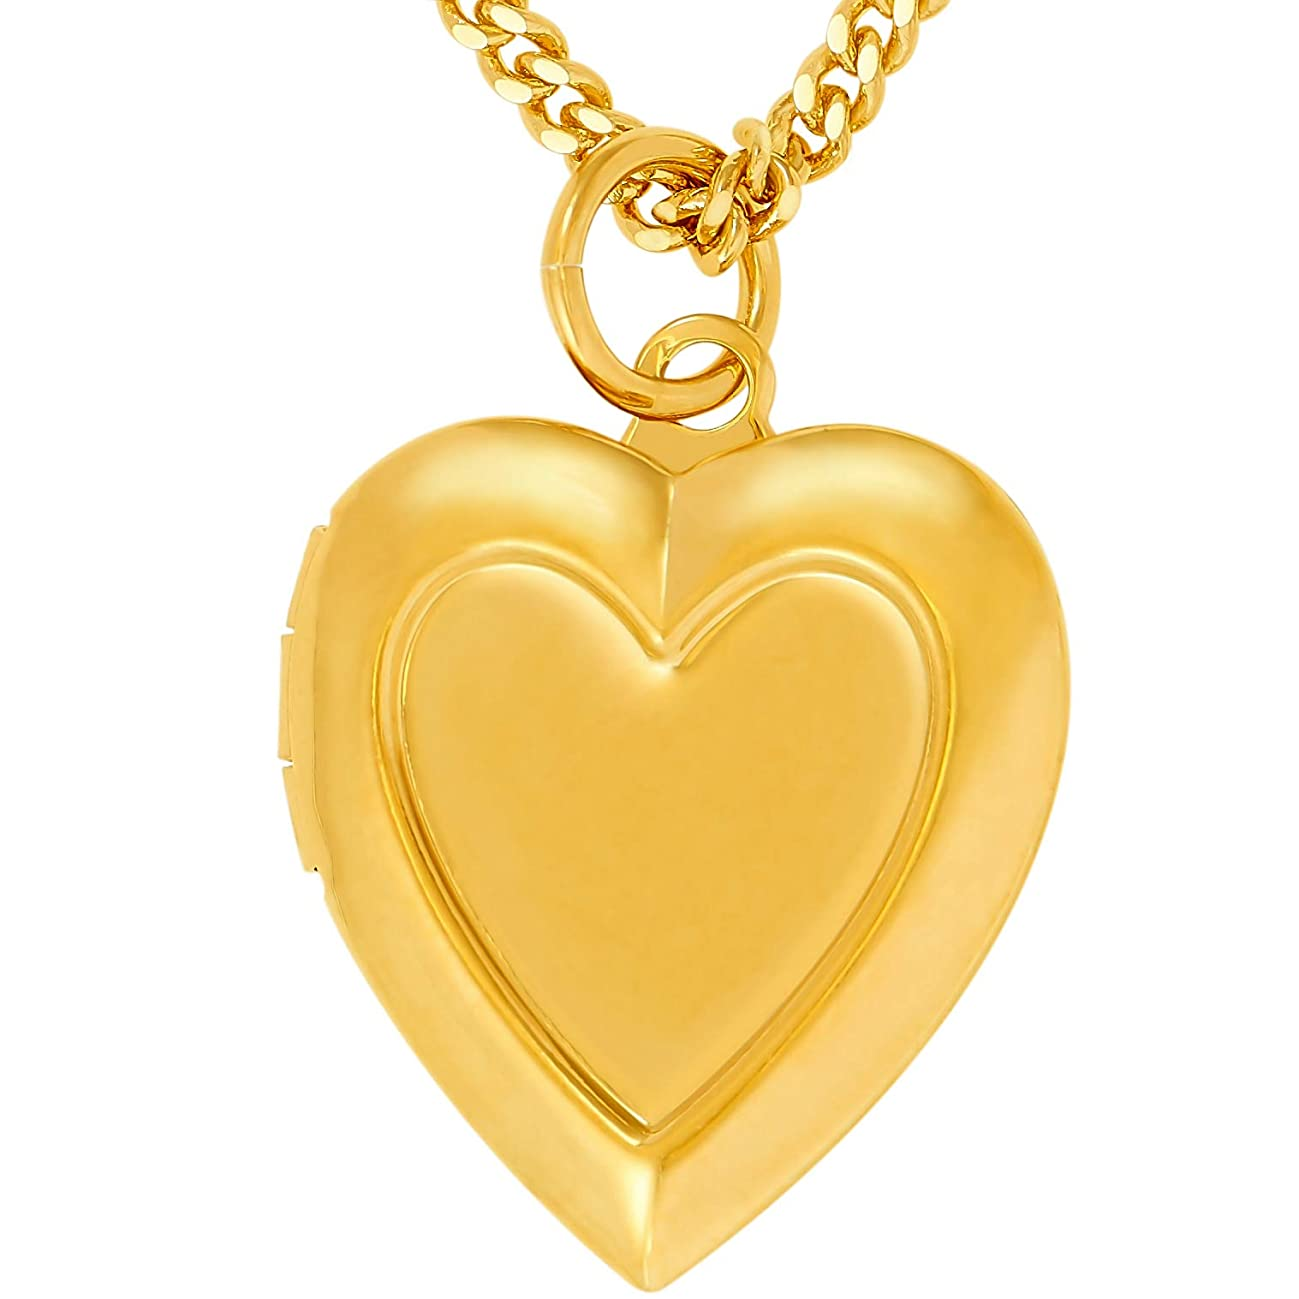 Lifetime Jewelry Locket Necklace [ Inlaid Heart Gold Locket ] Up to 20X More 24k Plating Than Other Photo Lockets - Heart Pendant for Women Girls and Kids with Complimentary 18'' Link Chain Necklace